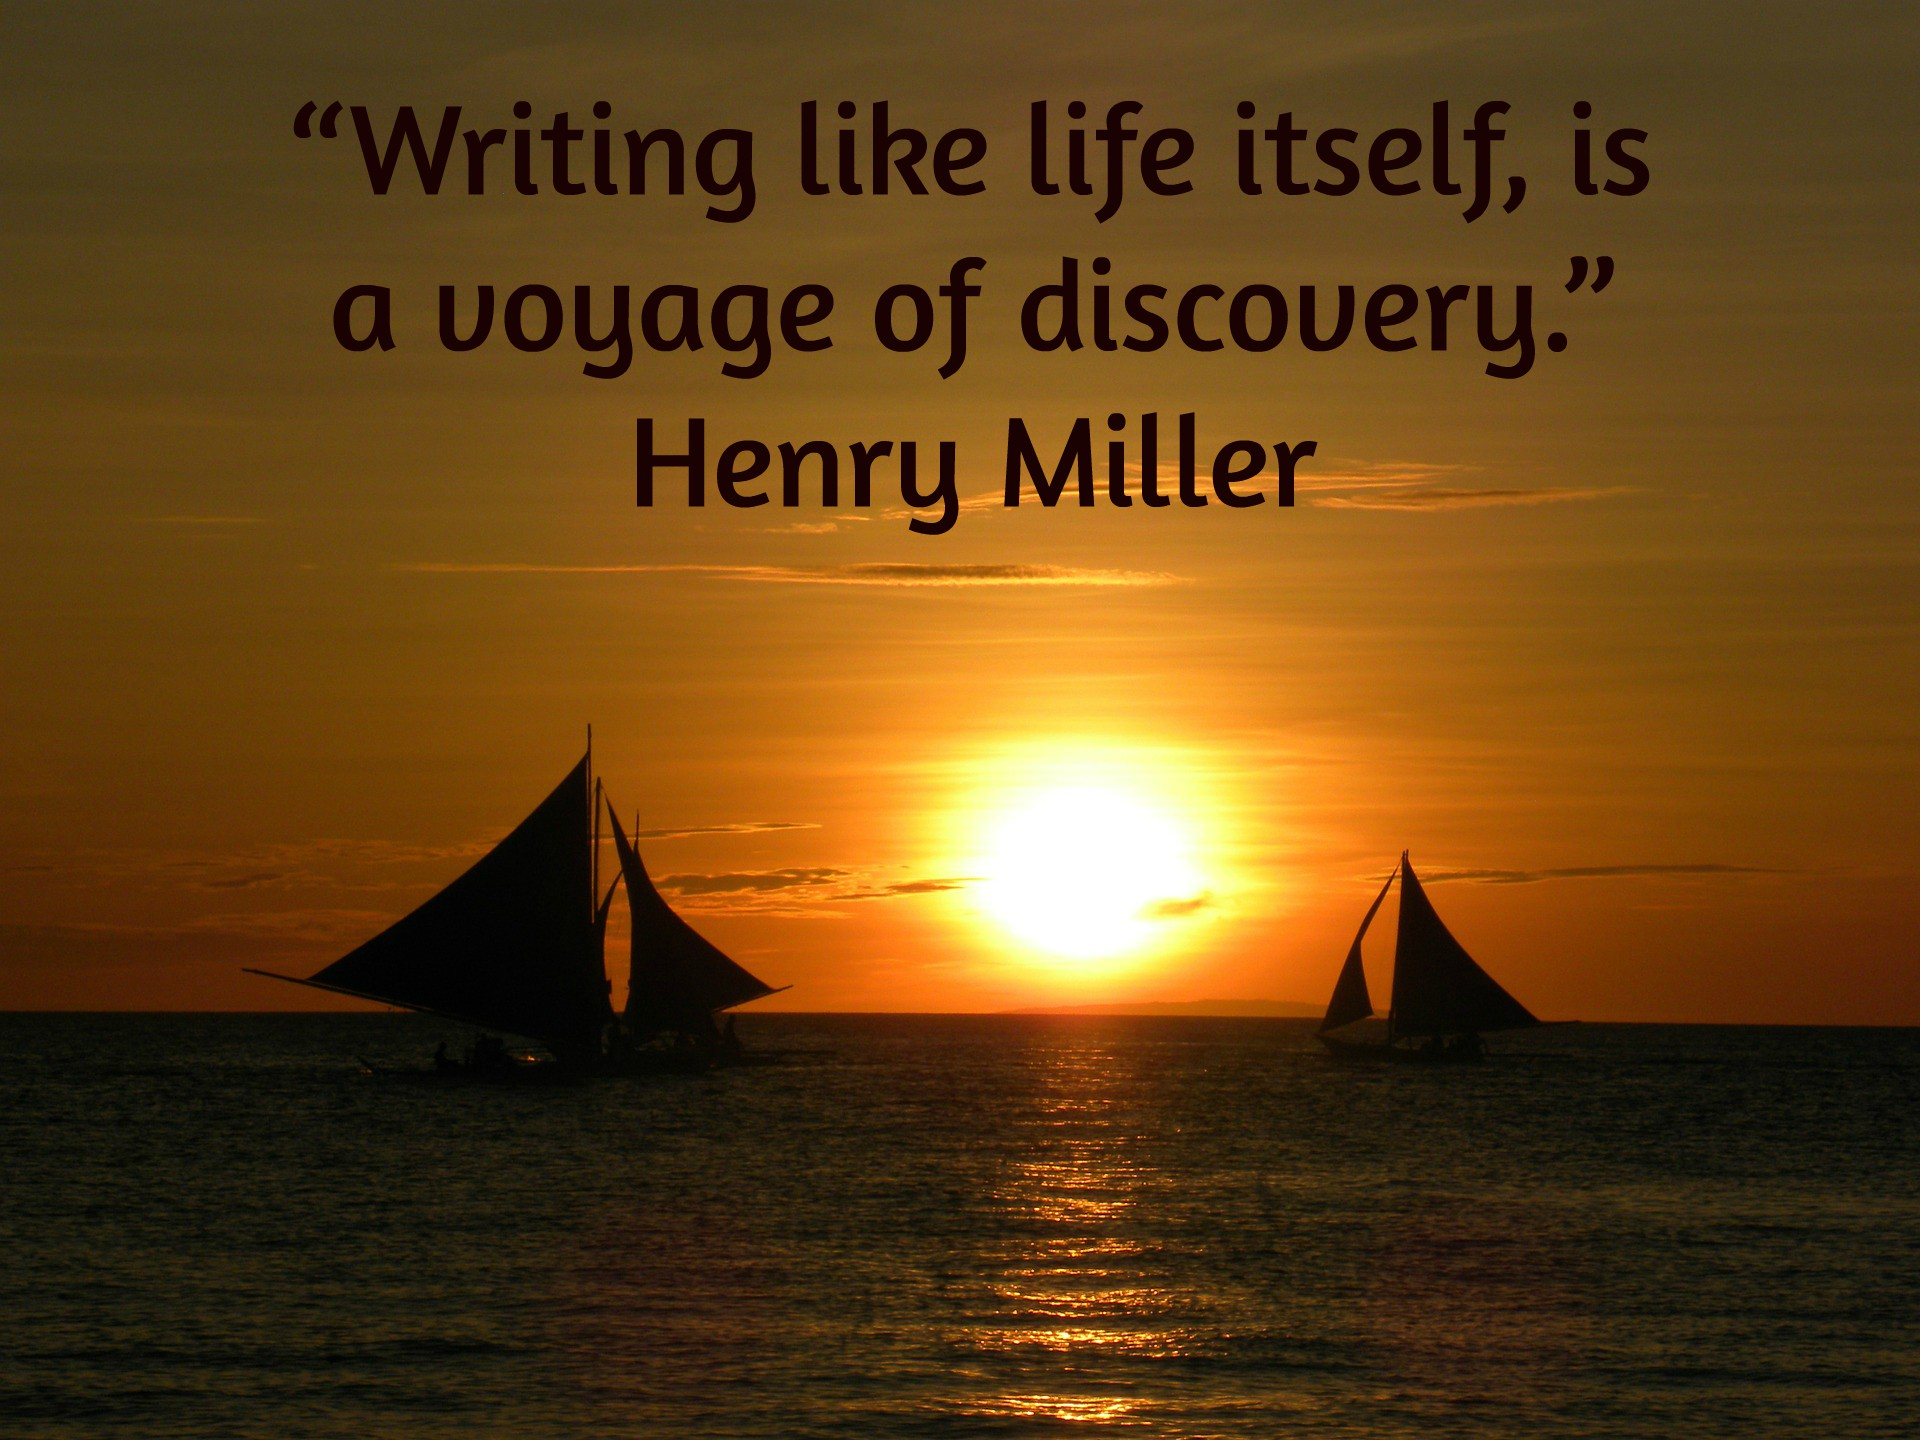 Wednesday Henry Miller Blogging >> Wednesday Writing Inspiration For 11 30 16 From Henry Miller The